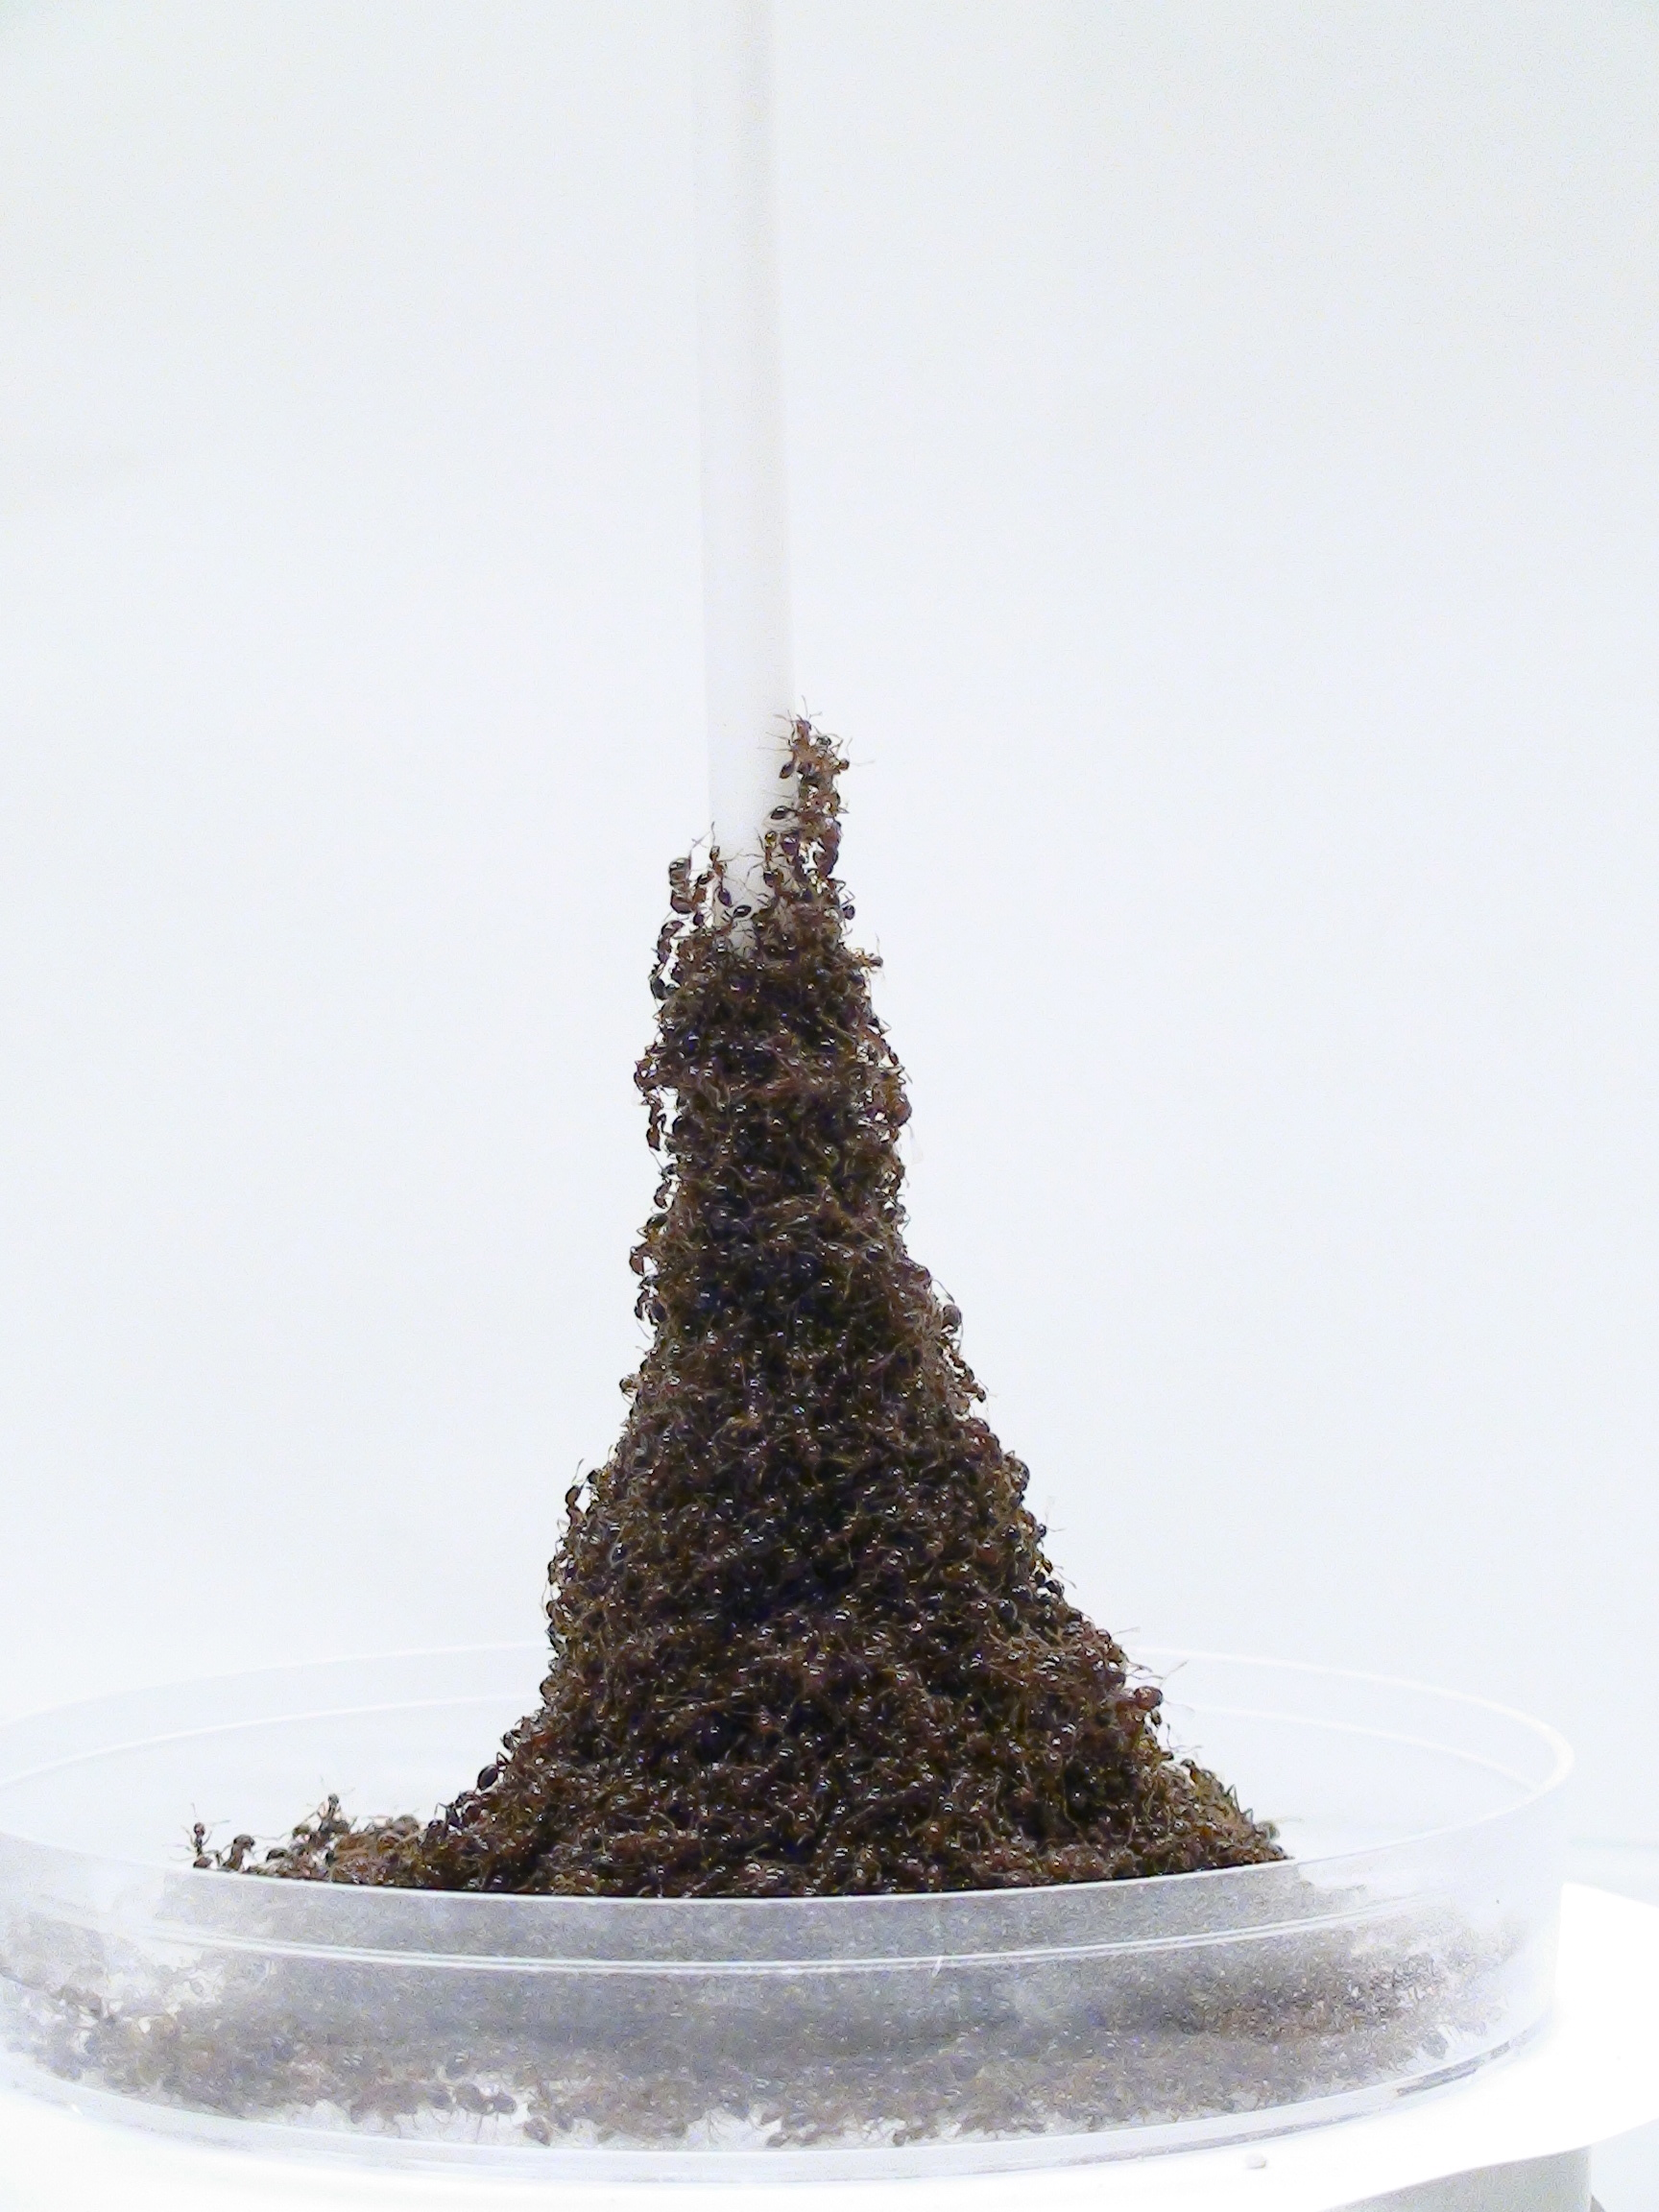 When fire ants run into a tall obstruction, they use their bodies to create structures that look like the Eiffel Tower